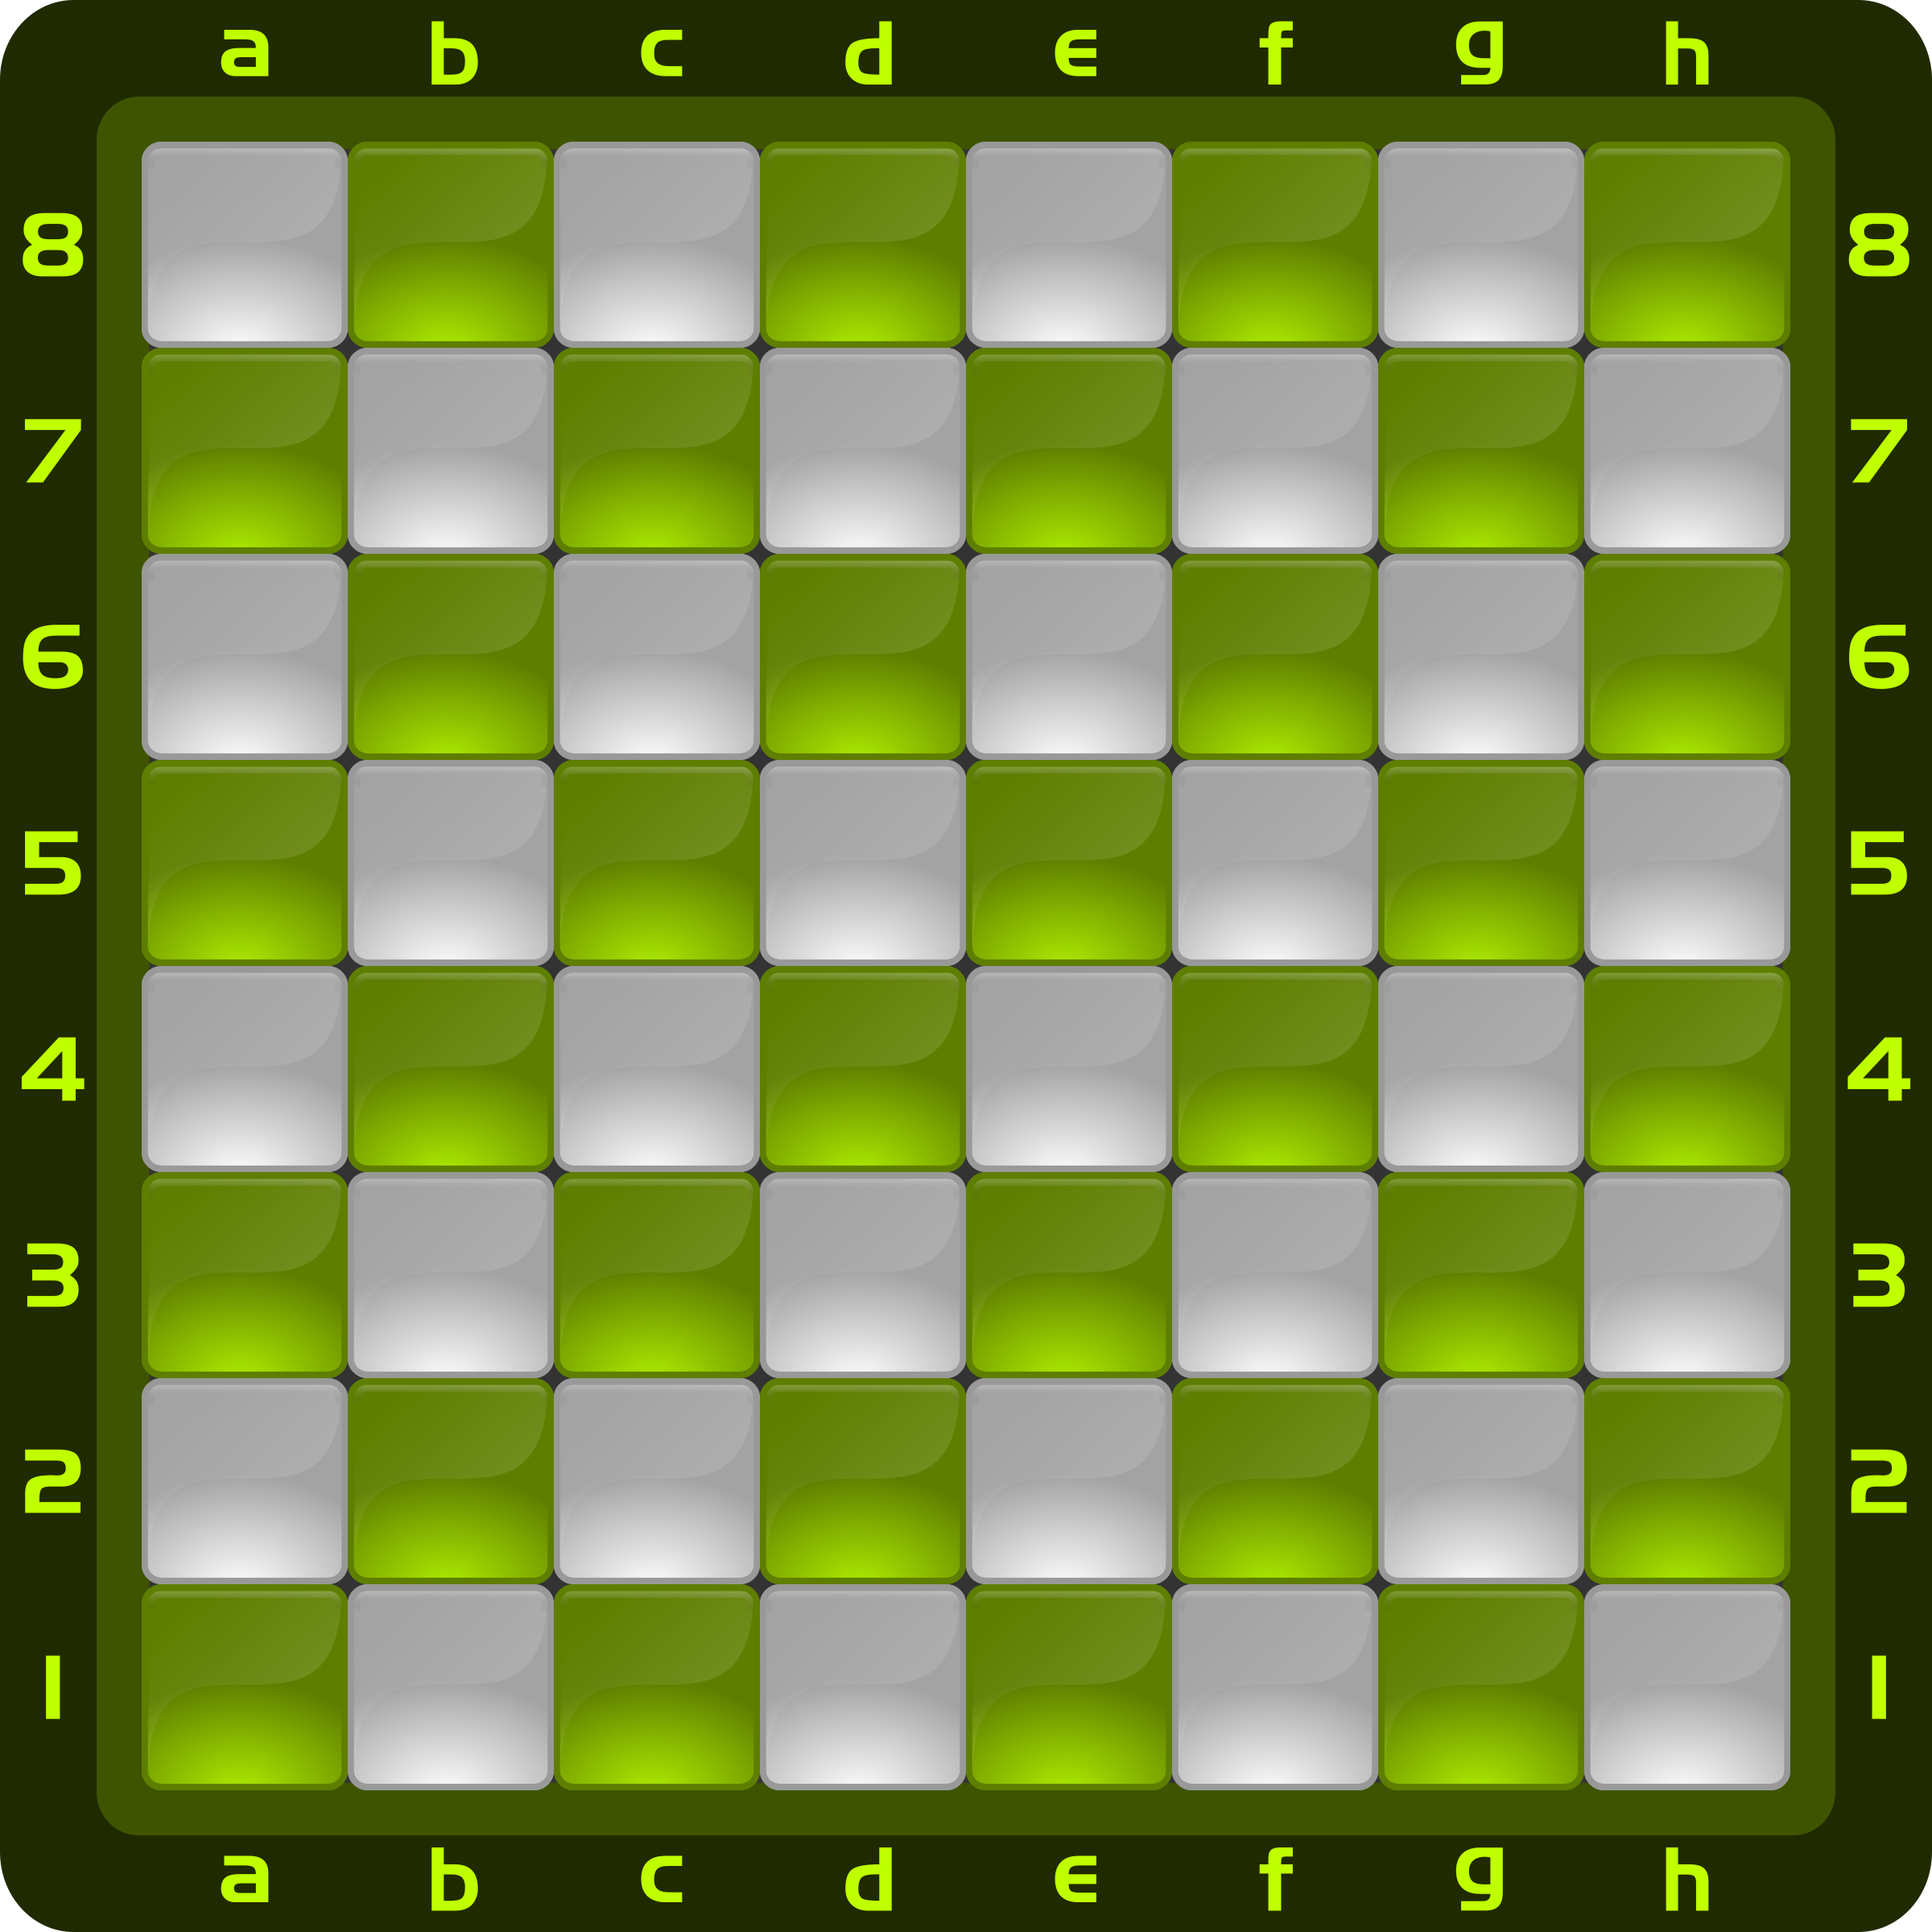 Chessboard Glossy Squares - Light Green by DG-RA